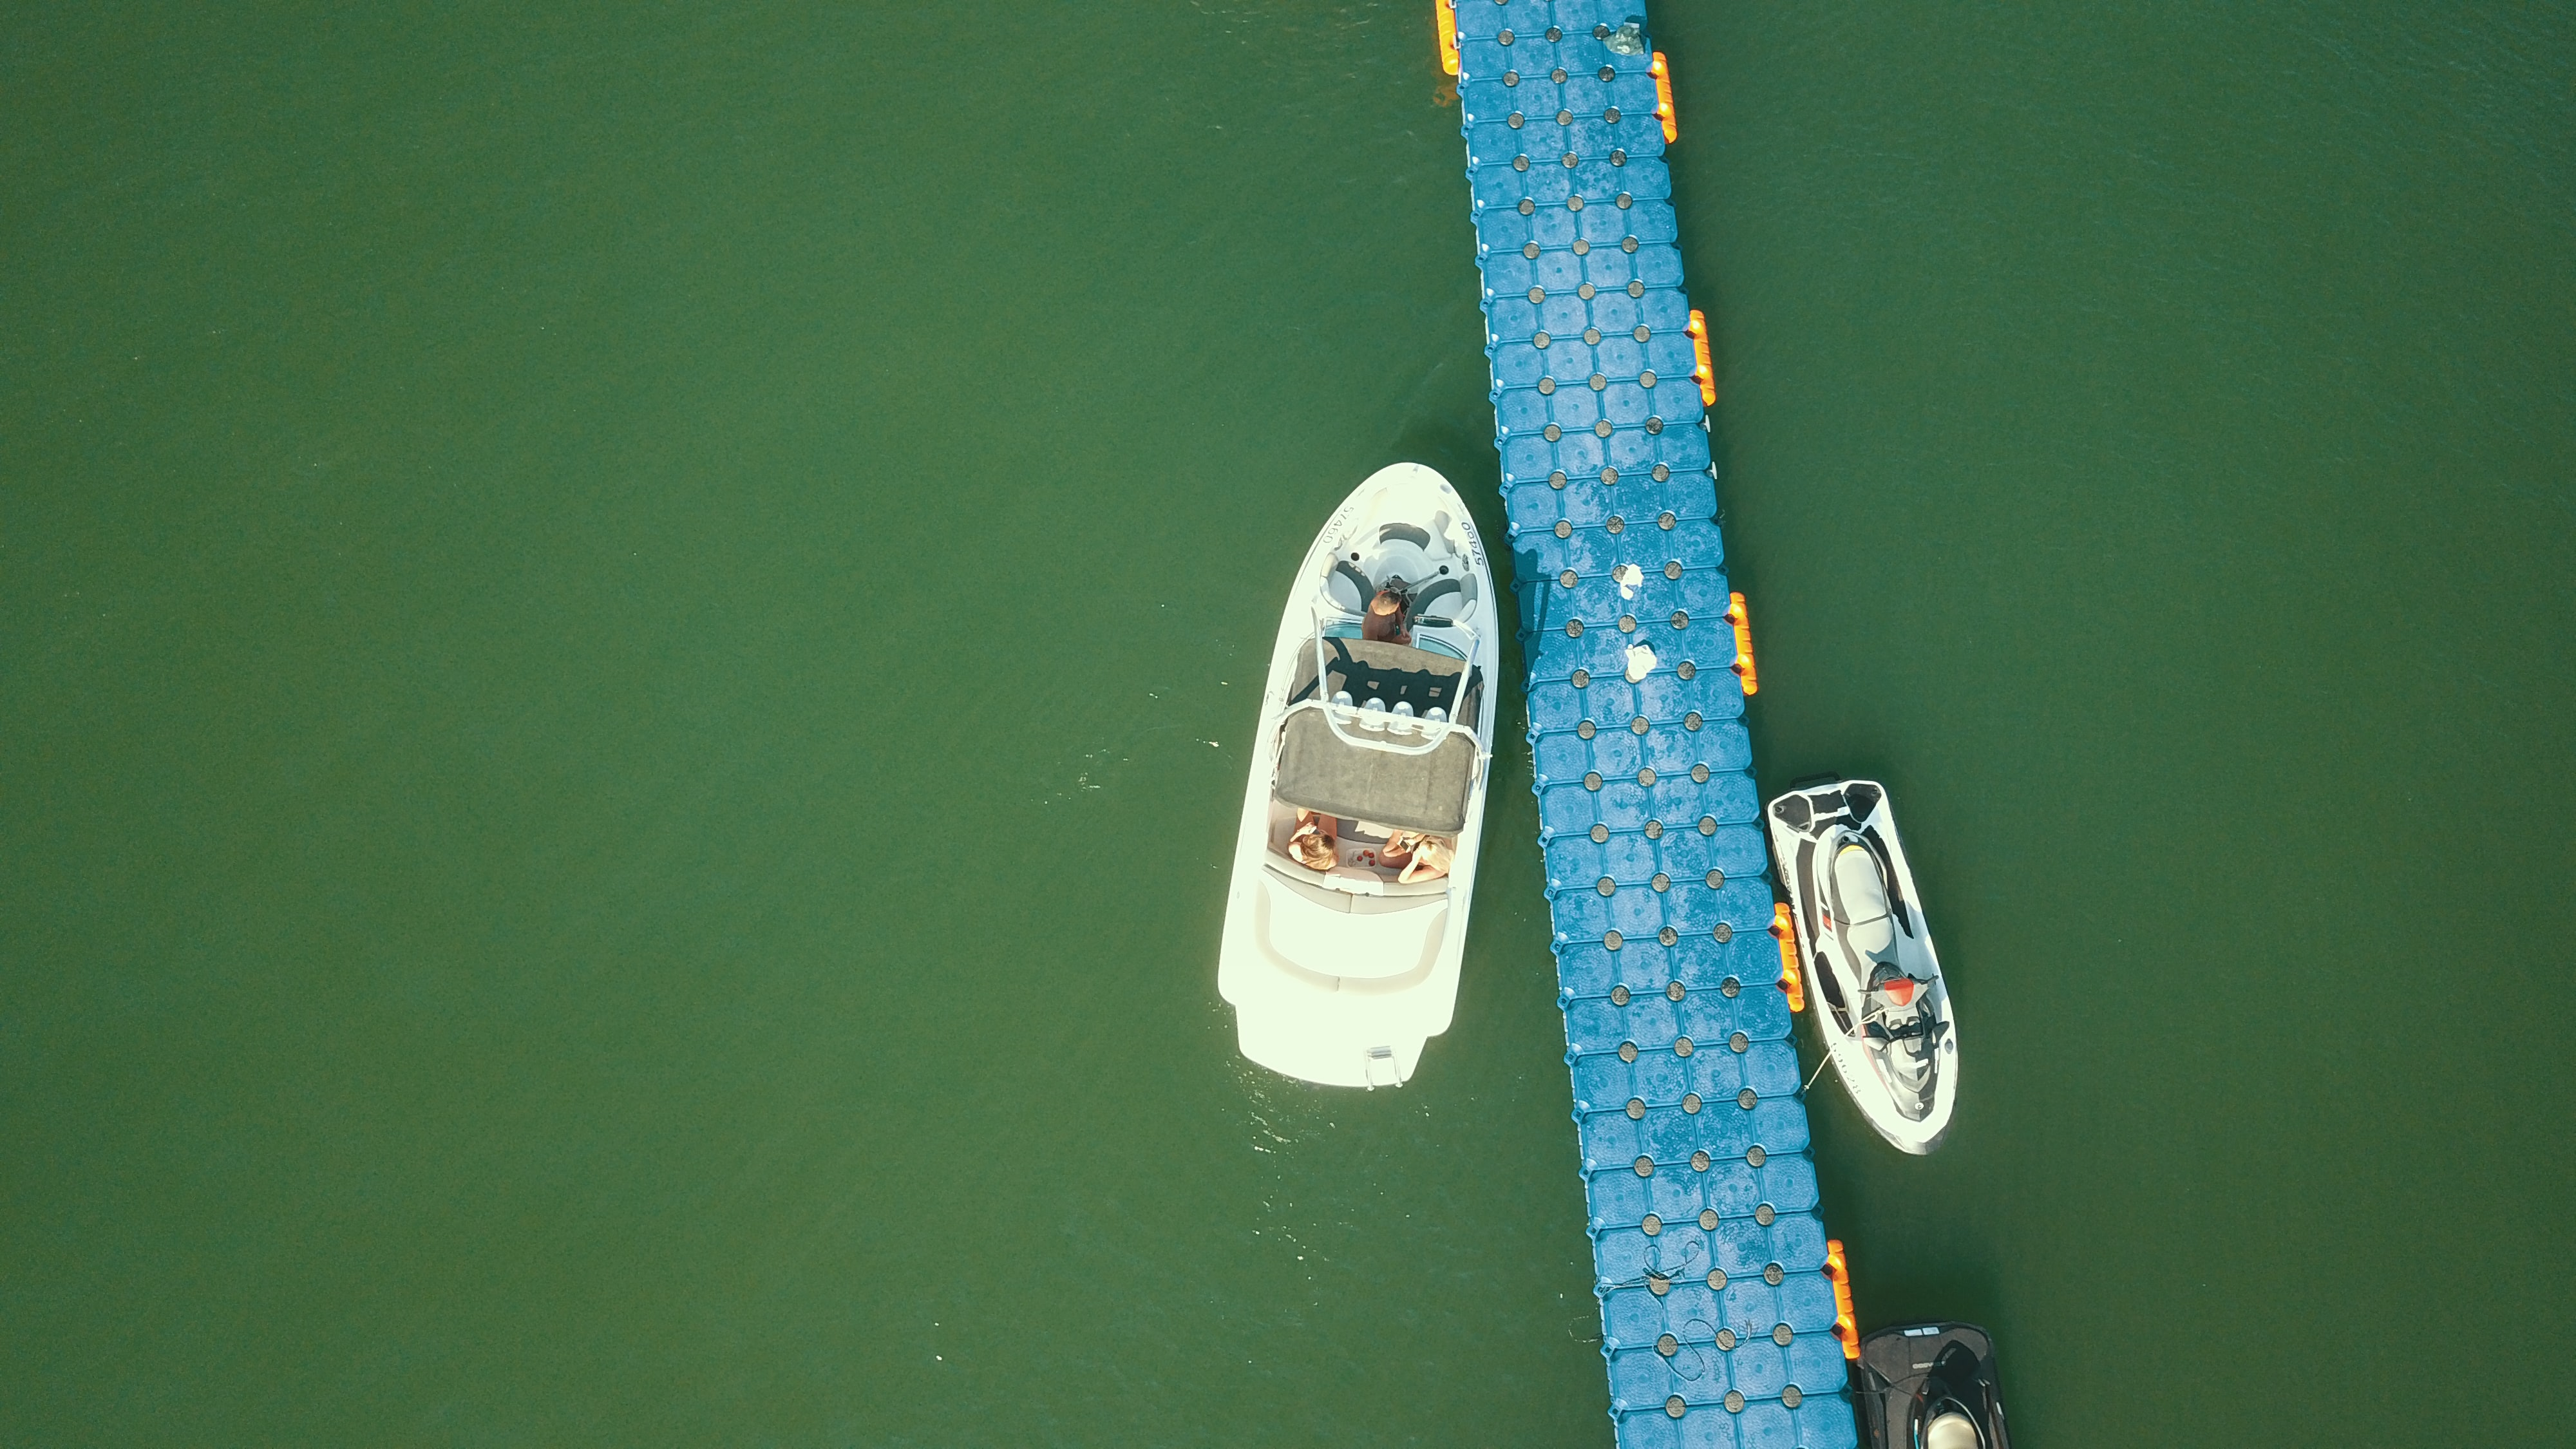 two white speedboats on body of water beside blue dock